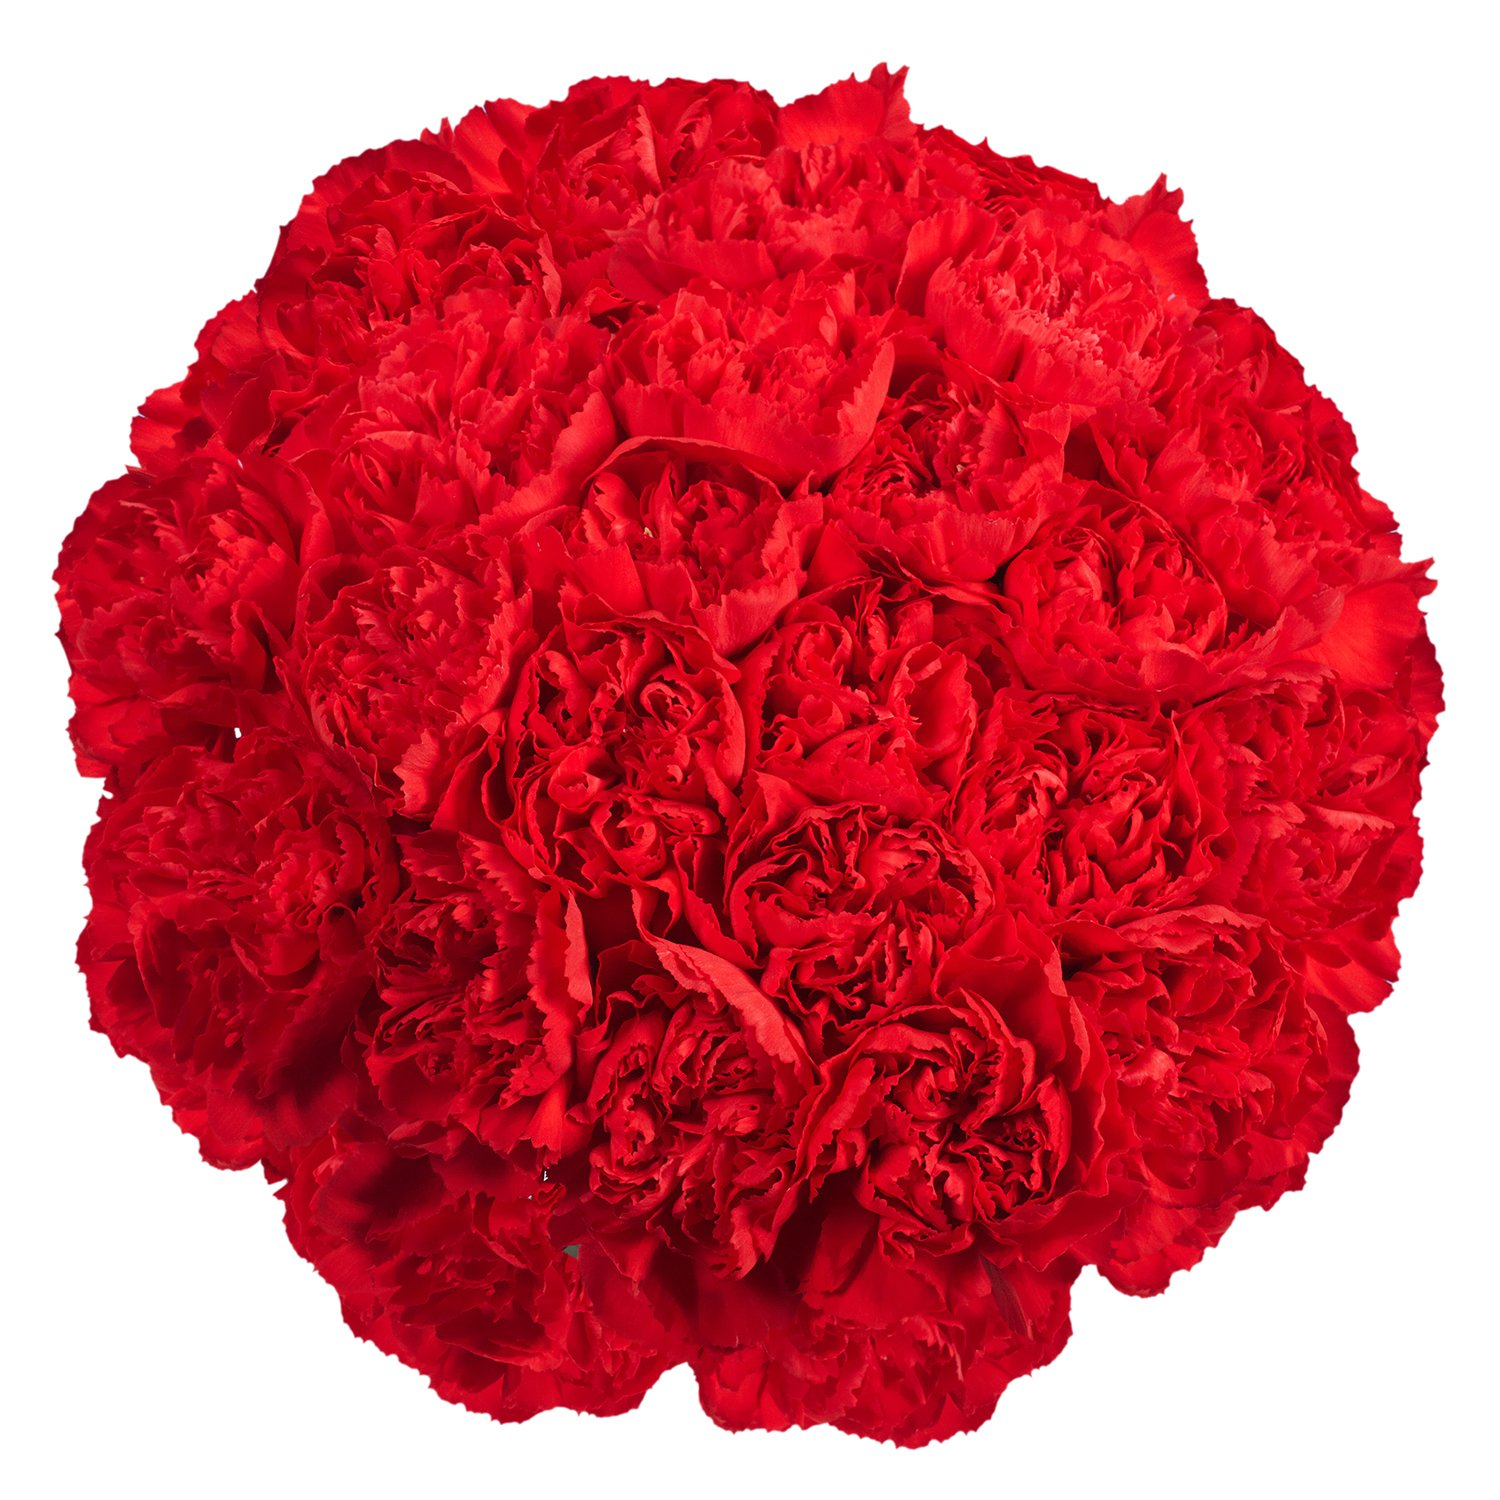 GlobalRose 200 Fresh Cut Red Carnations - Sweet Fresh Flowers- Express Delivery by GlobalRose